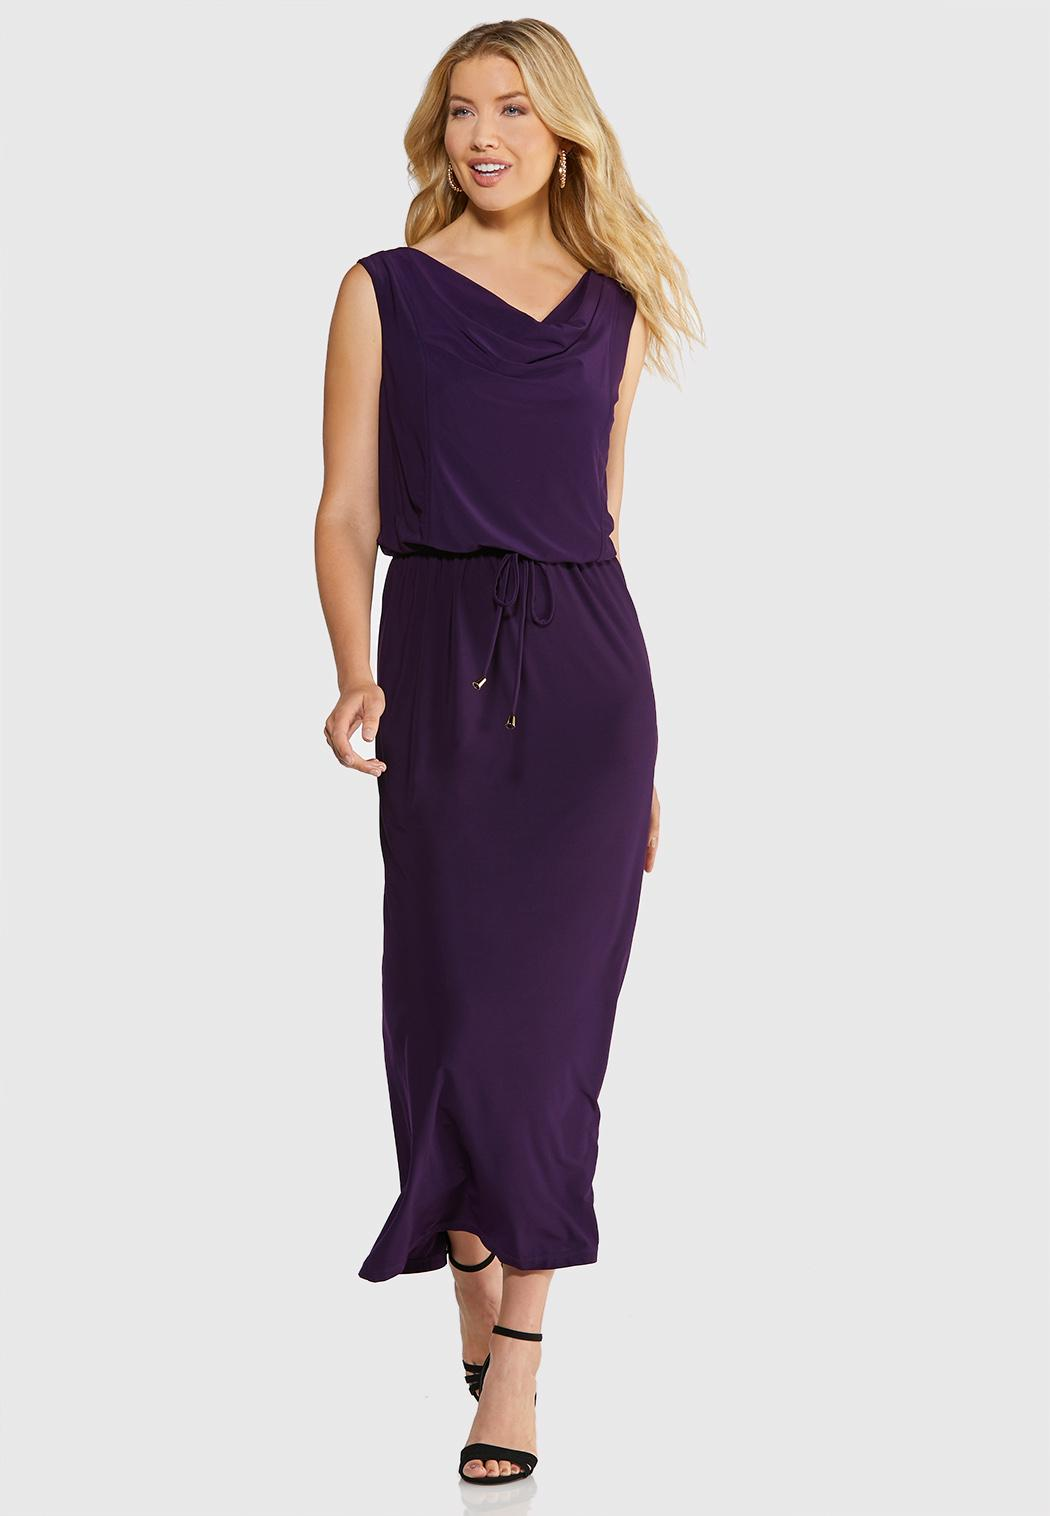 Plus Size Draped Maxi Dress Maxi Cato Fashions